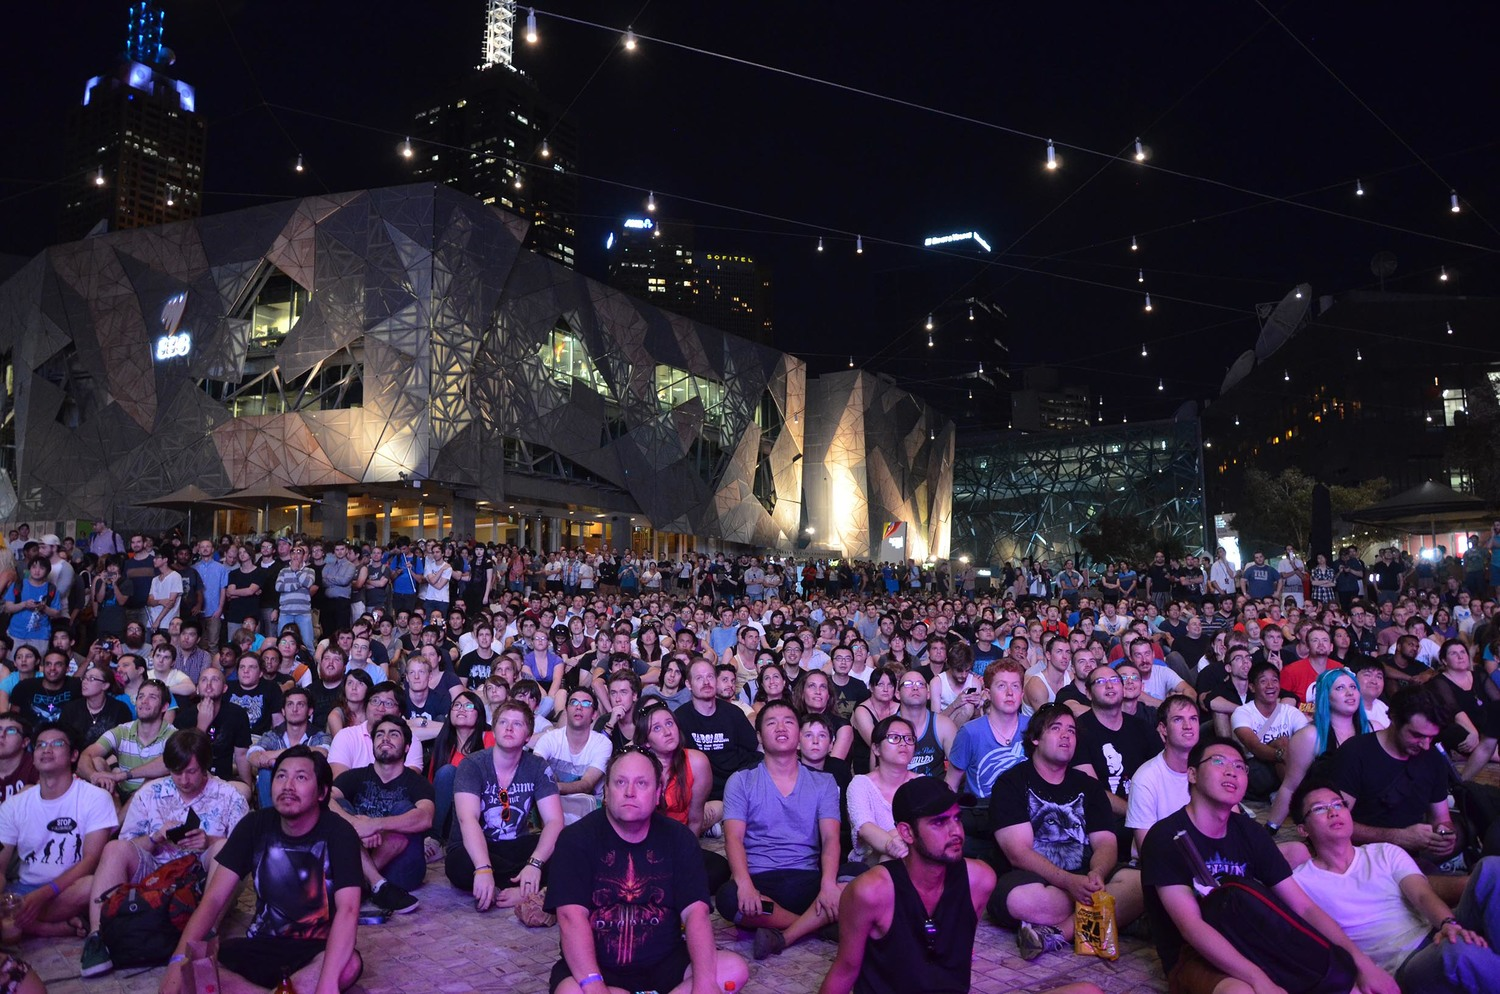 Audience at Federation Square, Melbourne